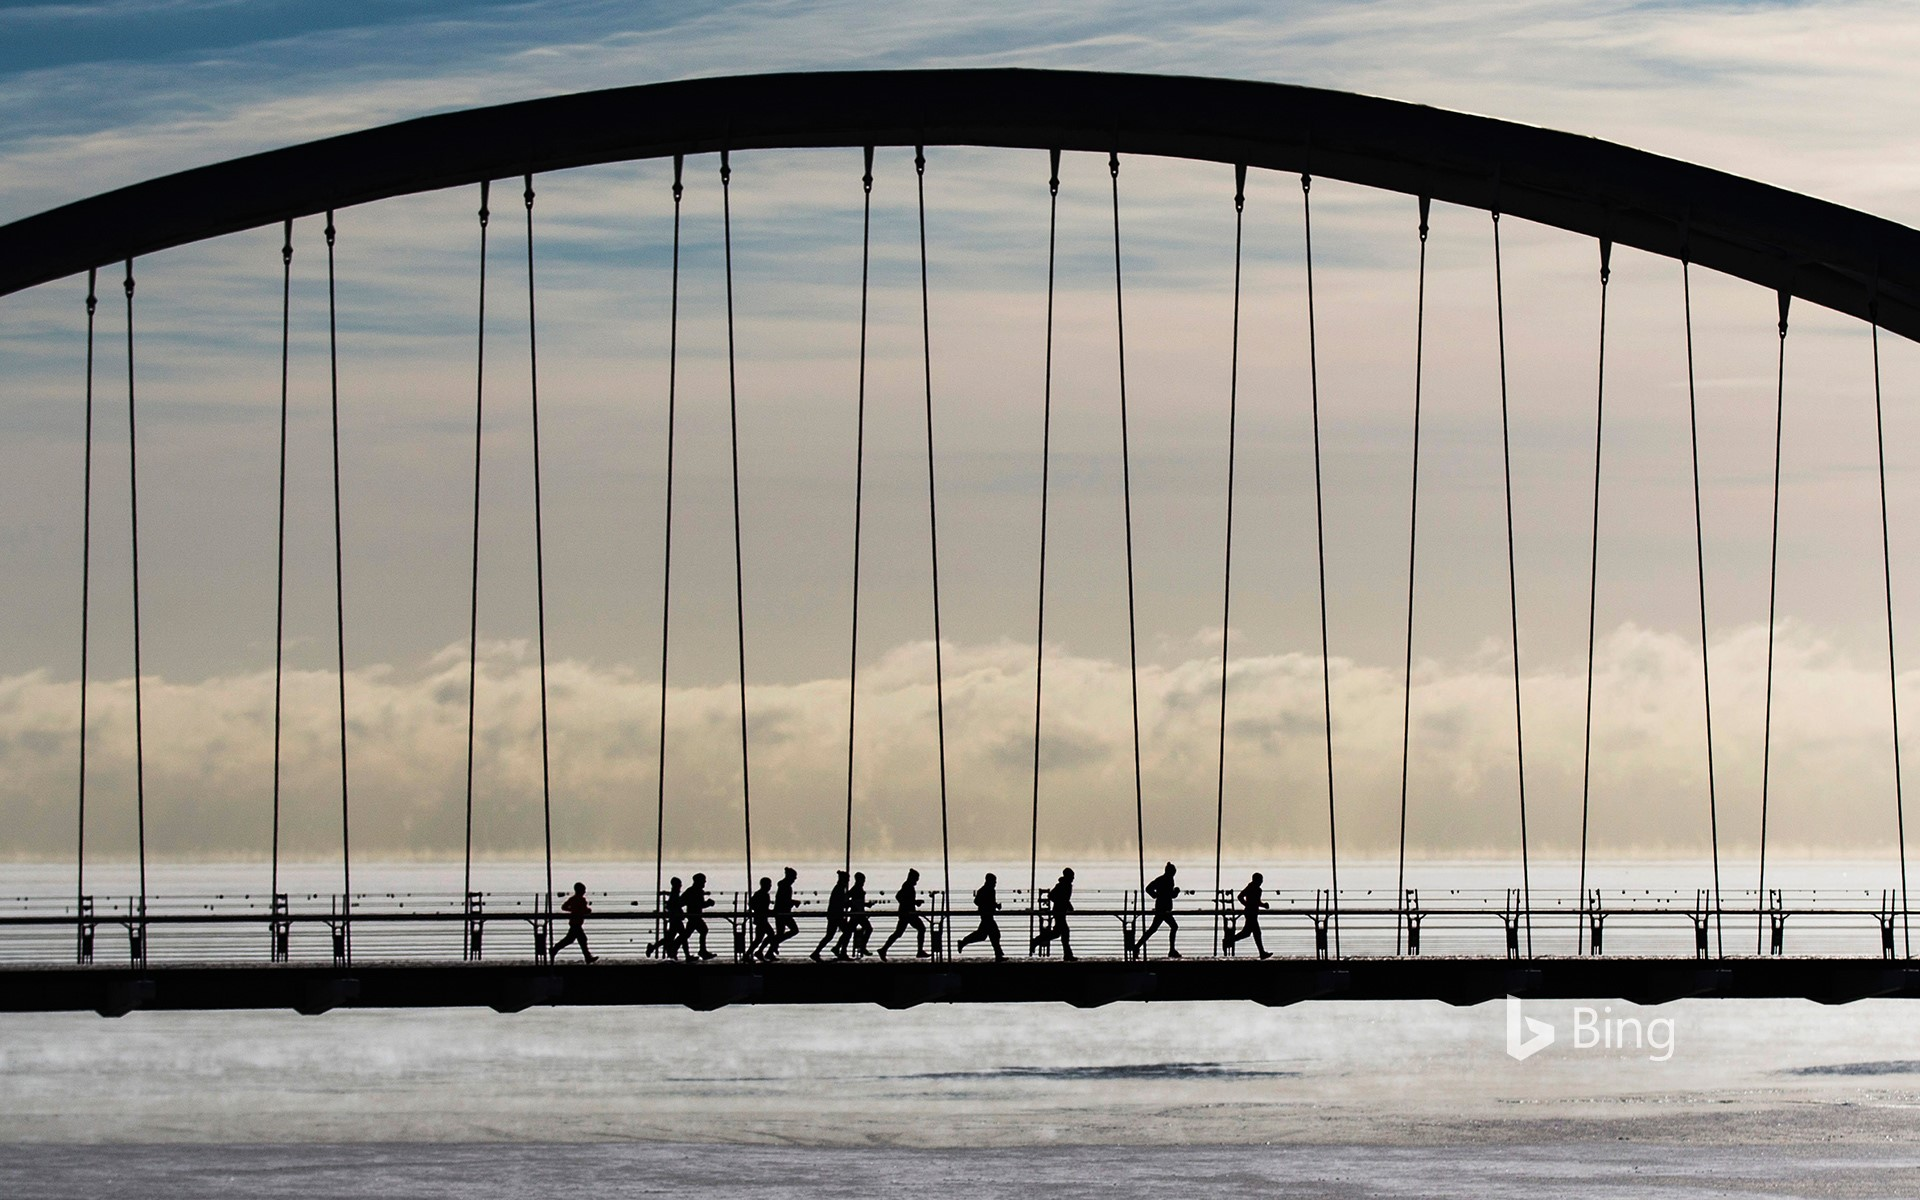 A group of joggers run across the Humber Bay Arch Bridge in Toronto, Canada